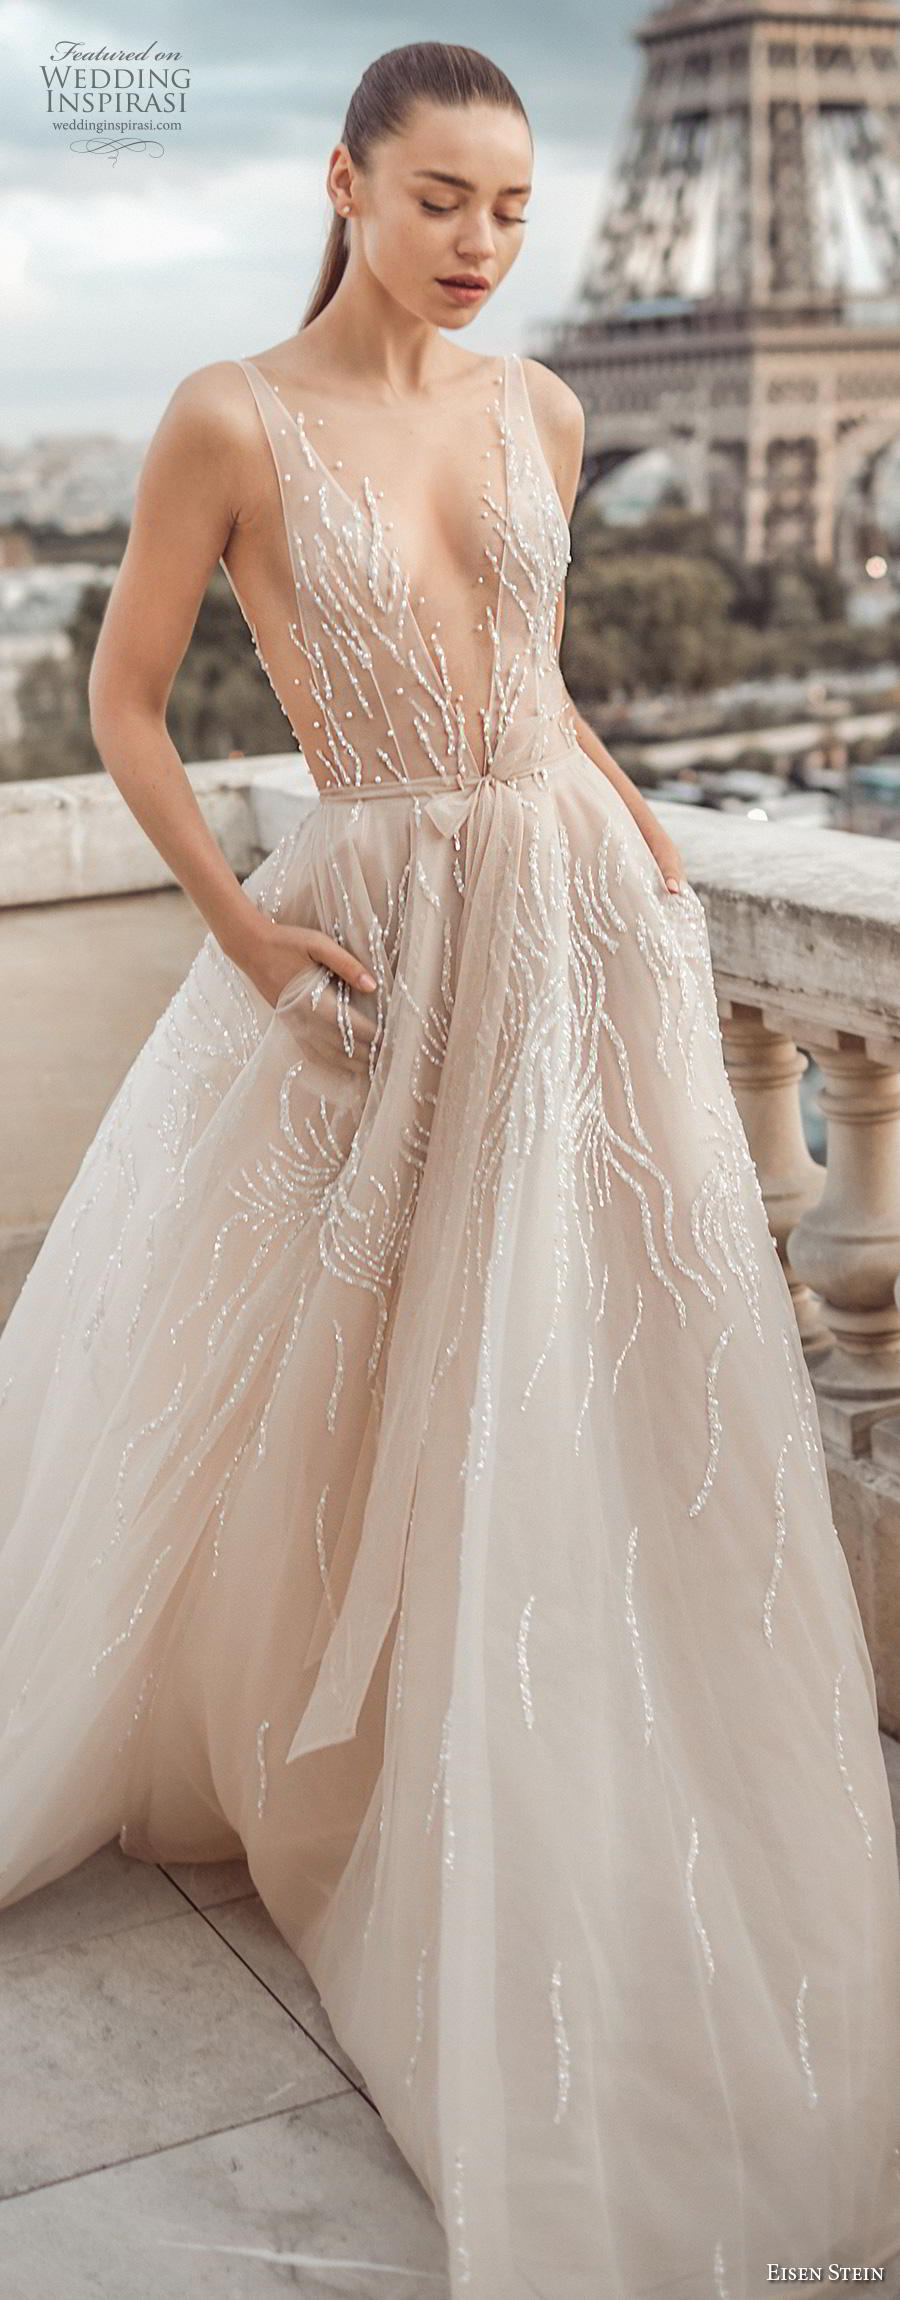 eisen stein fall 2020 bridal sleeveless with strap deep plunging v neck light embellishment romantic sexy nude color a  line wedding dress with pockets backless v back chapel train (6) zv